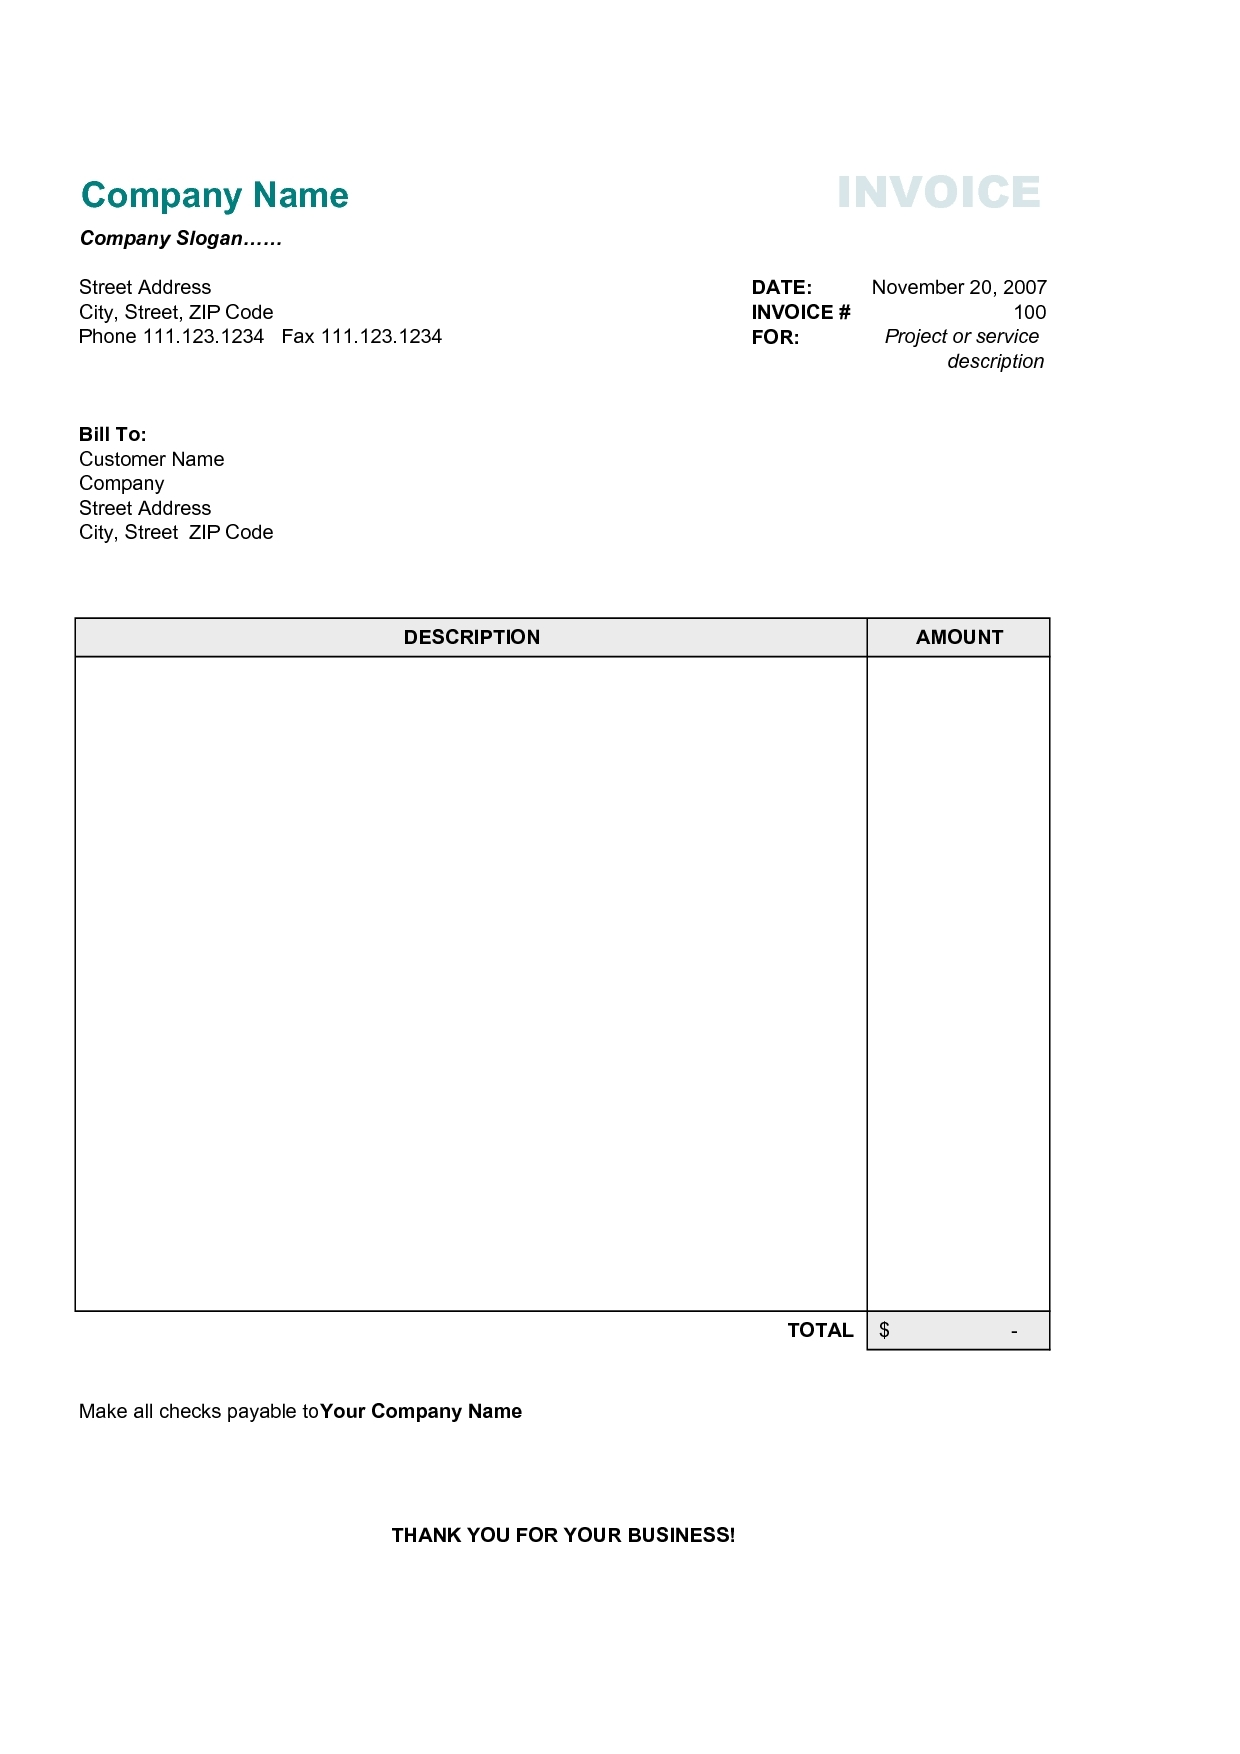 invoice receipt template word car test engineer cover letter wine free invoice receipt template